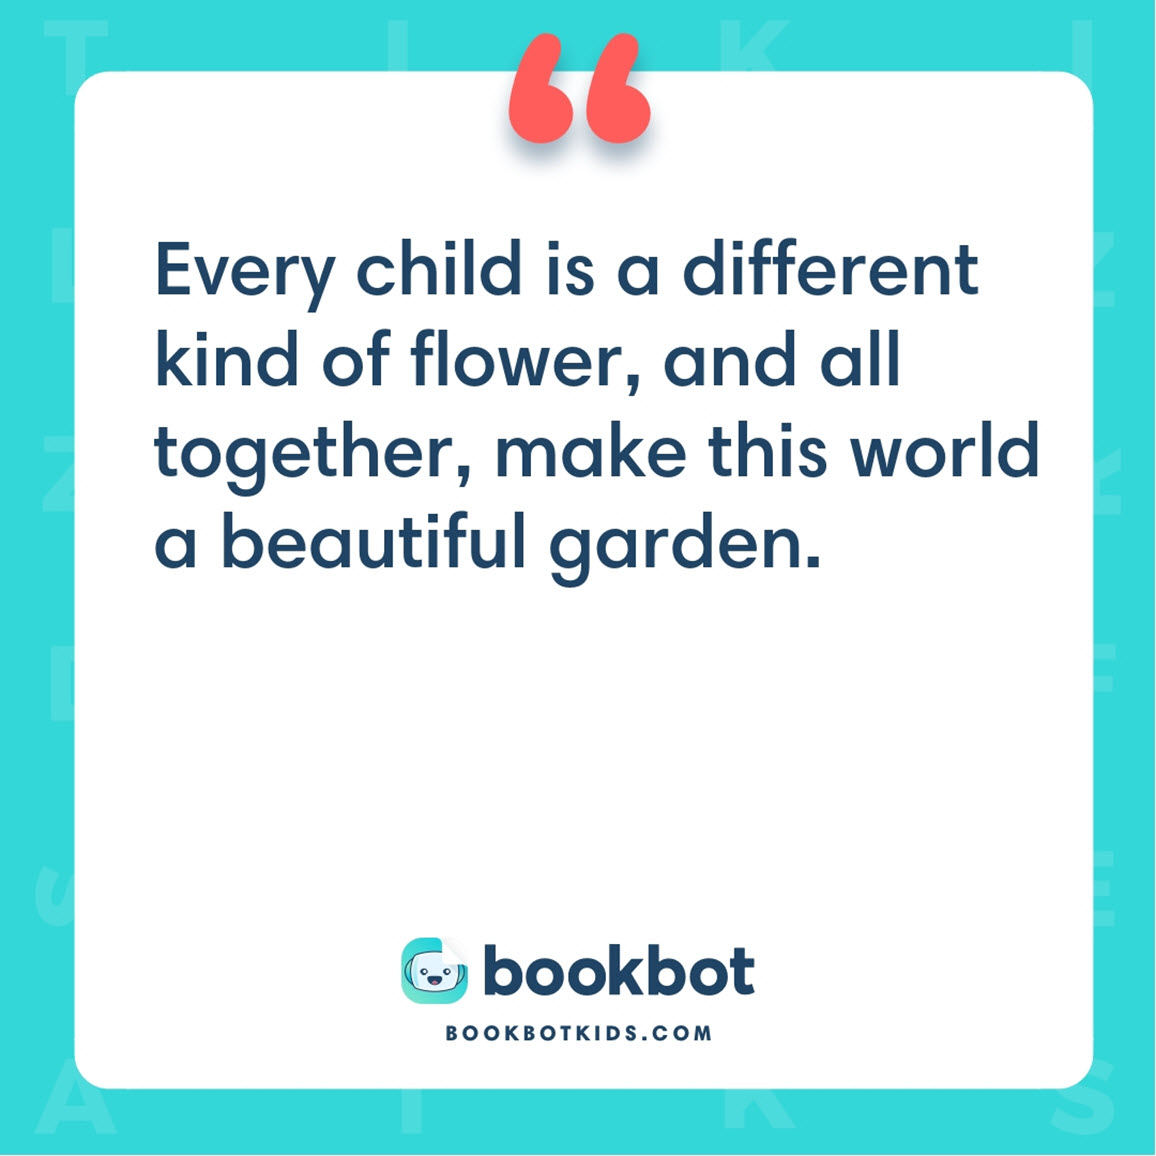 Every child is a different kind of flower, and all together, make this world a beautiful garden.